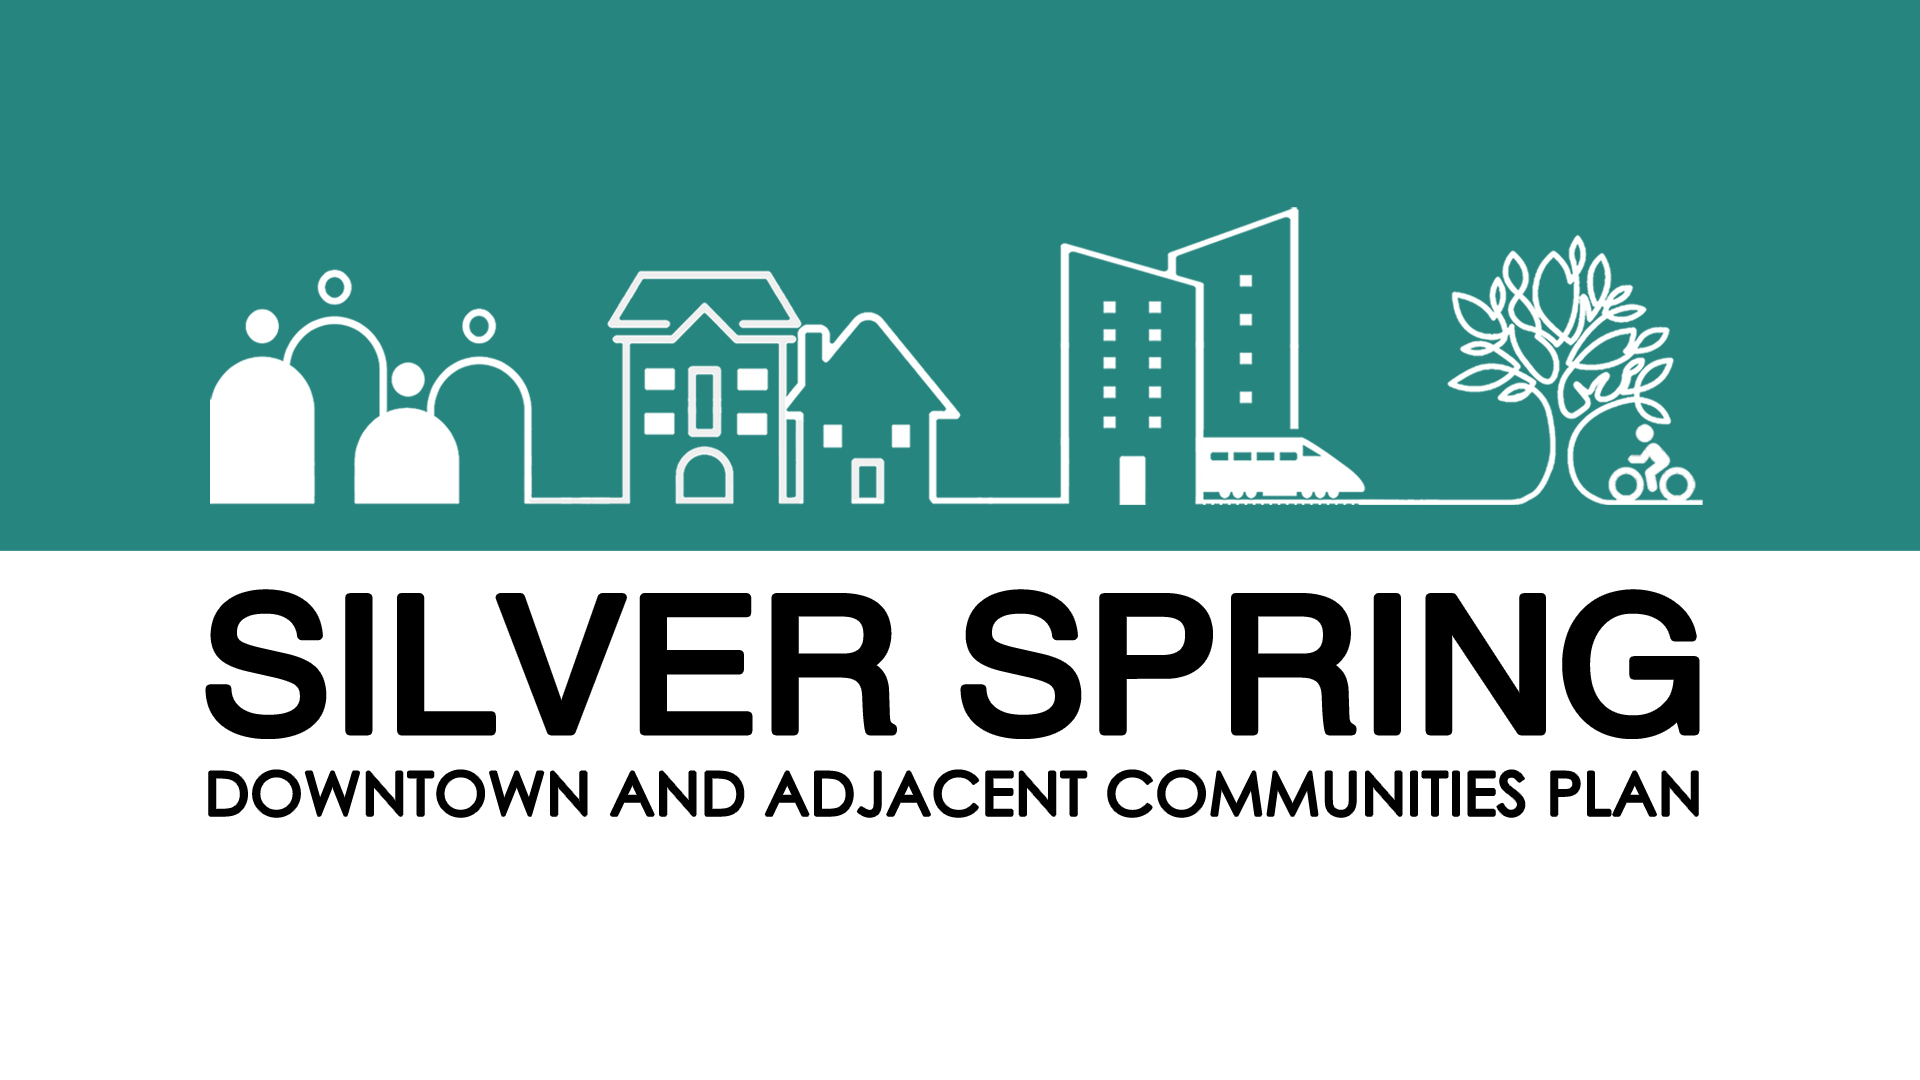 Silver Spring Downtown and Adjacent Communities Plan